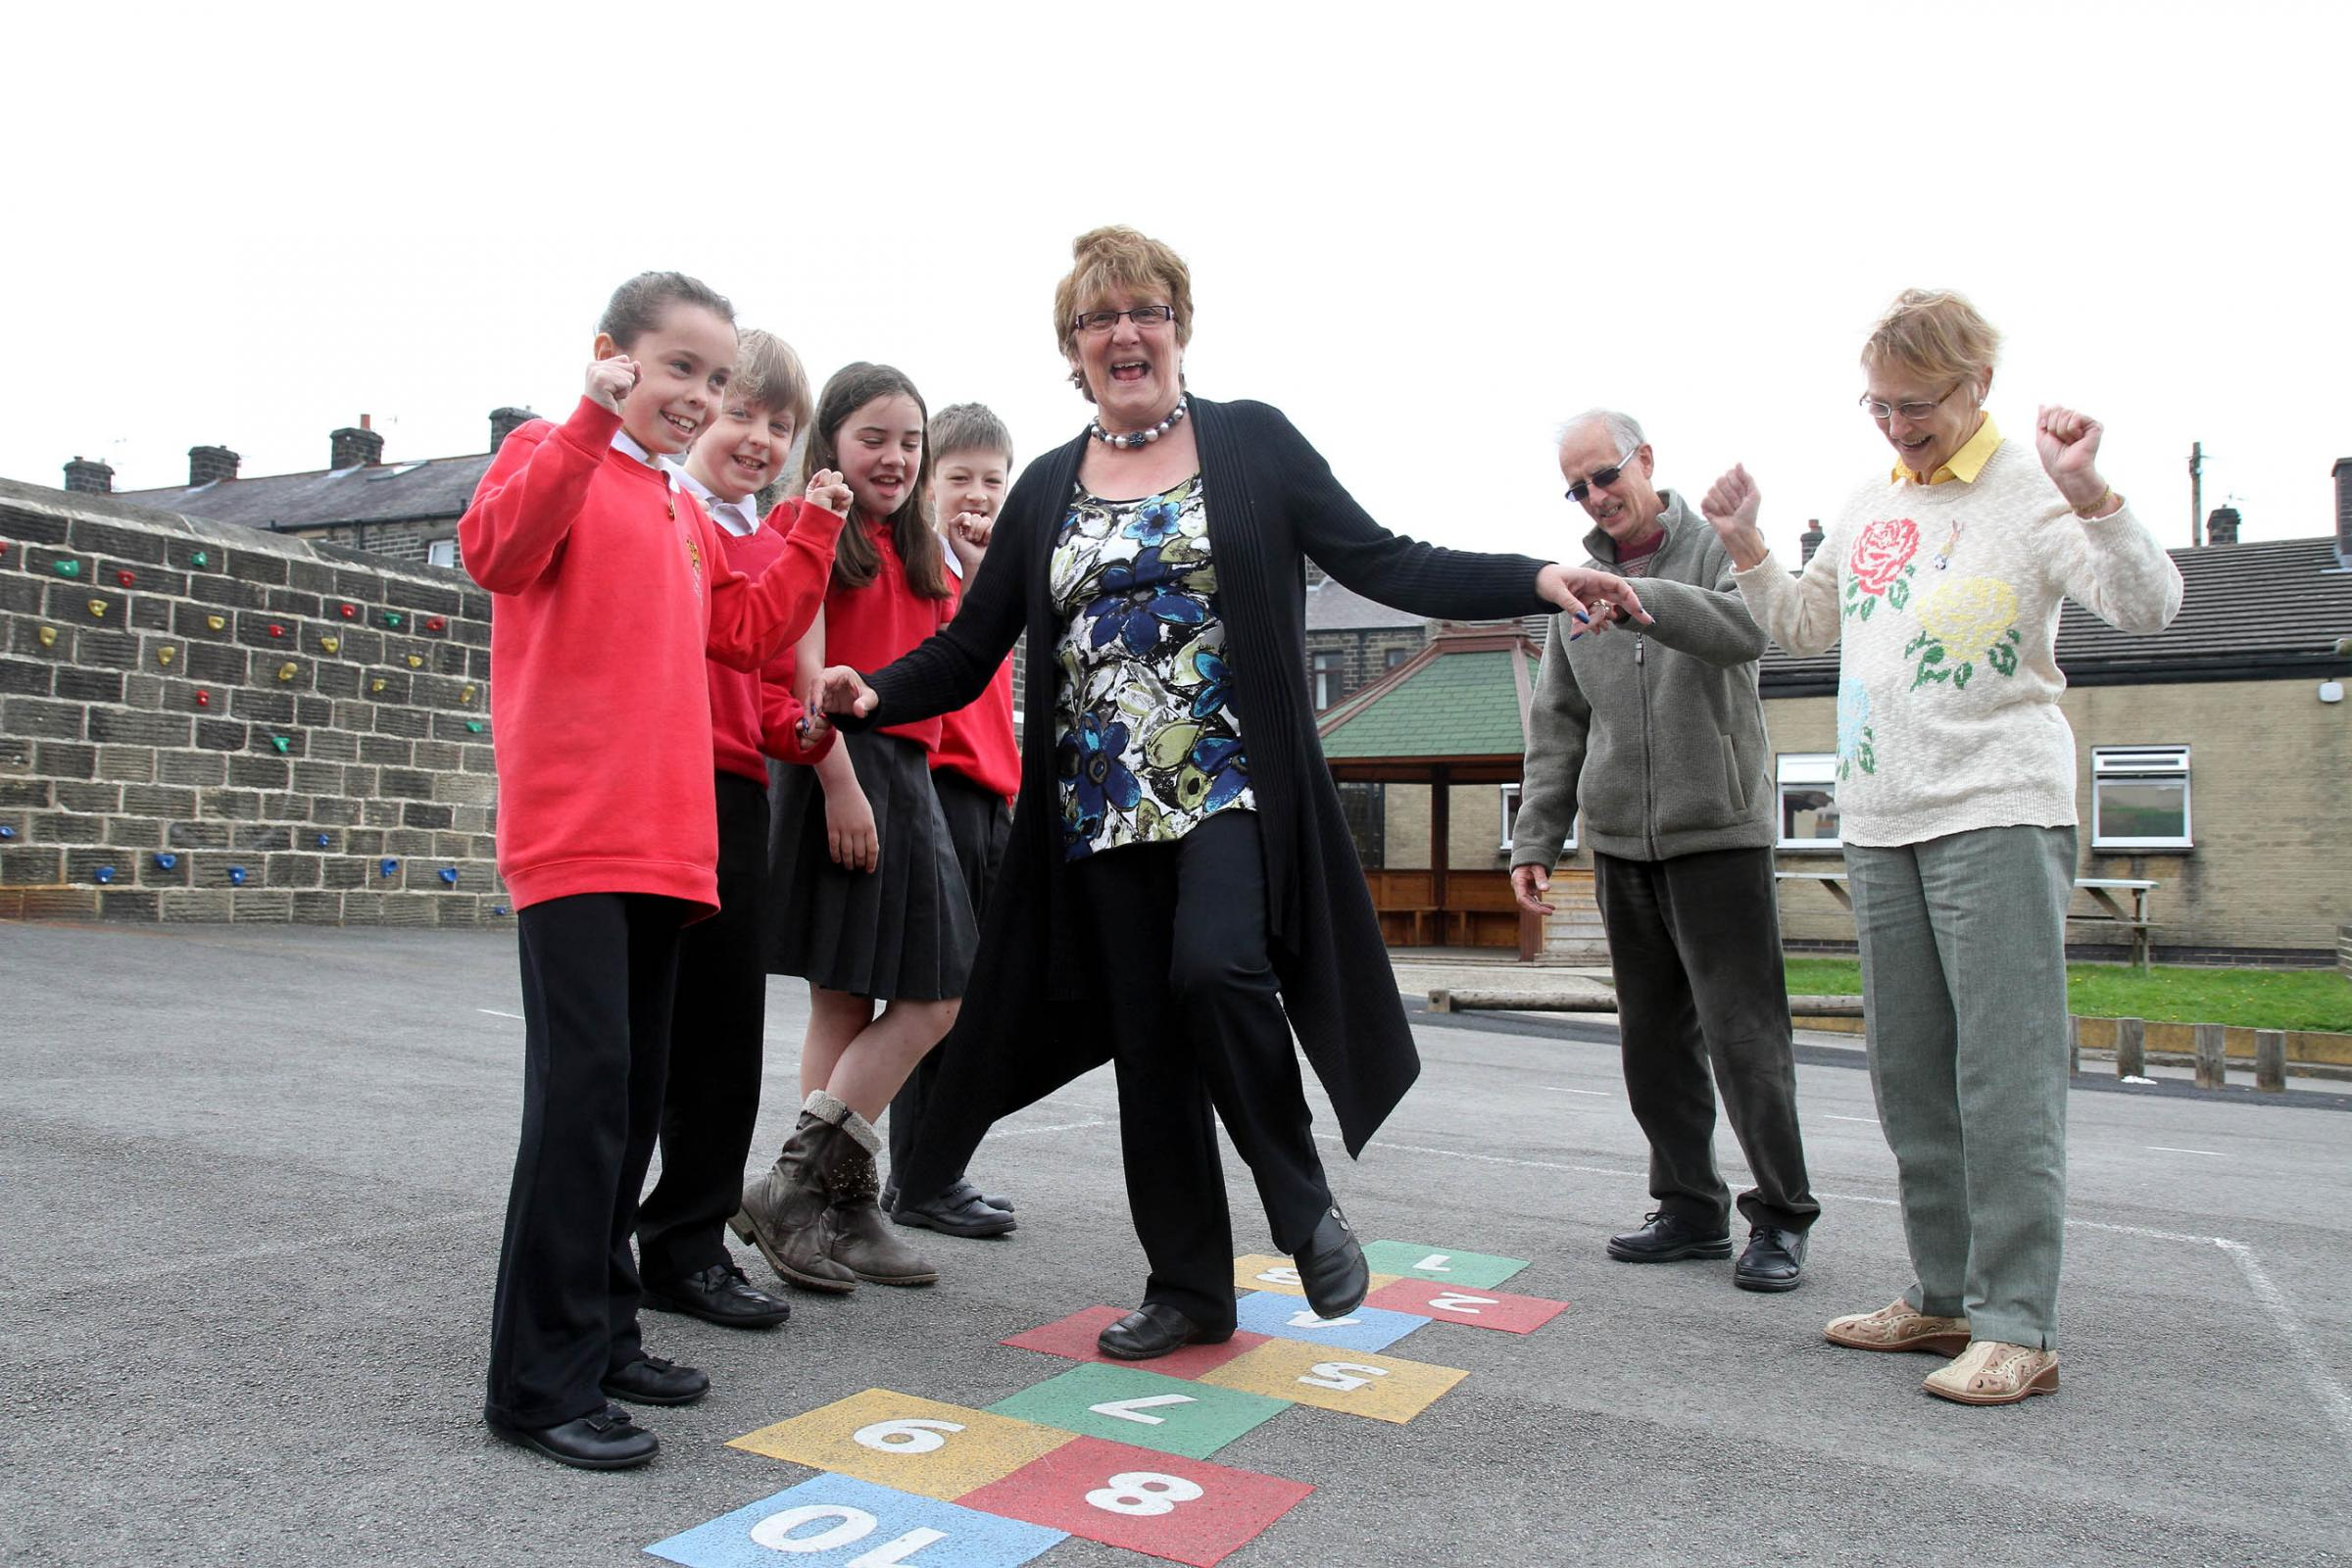 Mavis Clarkson shows off her hopscotch skills watched by visitors Edgar Clarkson and Corrie Sunderland, with Hothfield Junior School pupils, from left, Hannah Griffiths, Ben Walker, Ella Thornber and David Tabszewski